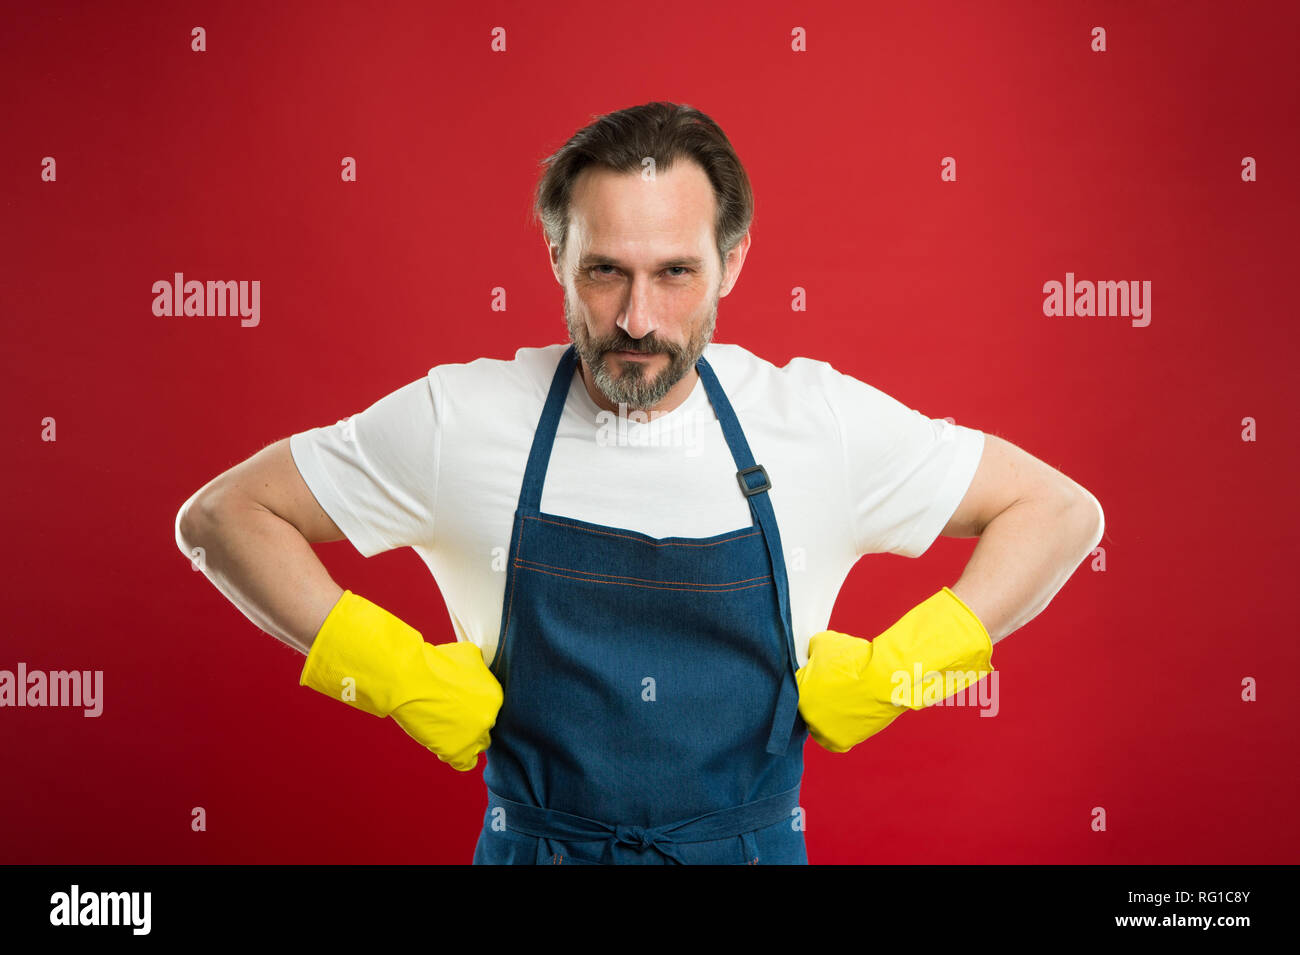 Spring cleaning. Commercial cleaning company concept. domestic helper. Maid or houseman cares about house. Bearded man.general or regular clean up. Housewife at work. - Stock Image